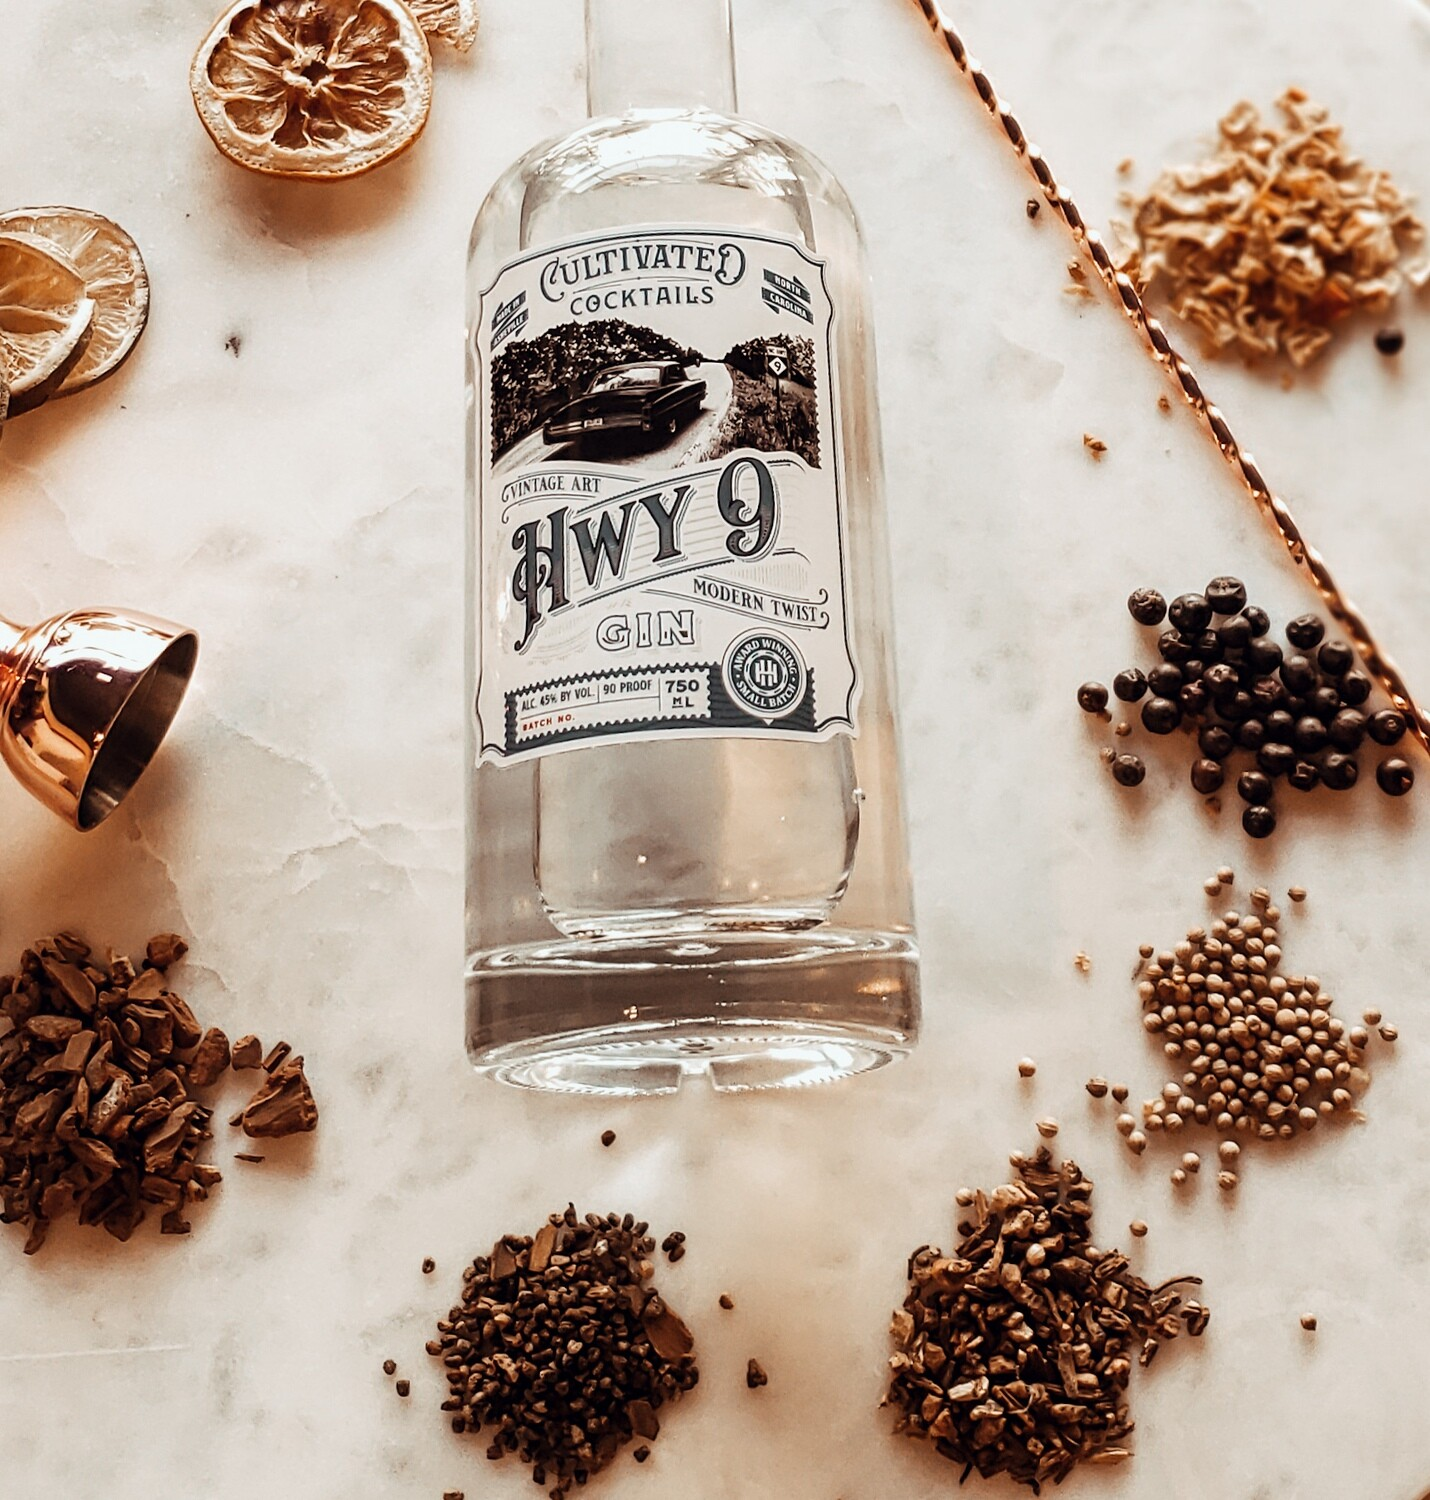 In Store Pick Up Hwy 9 Gin